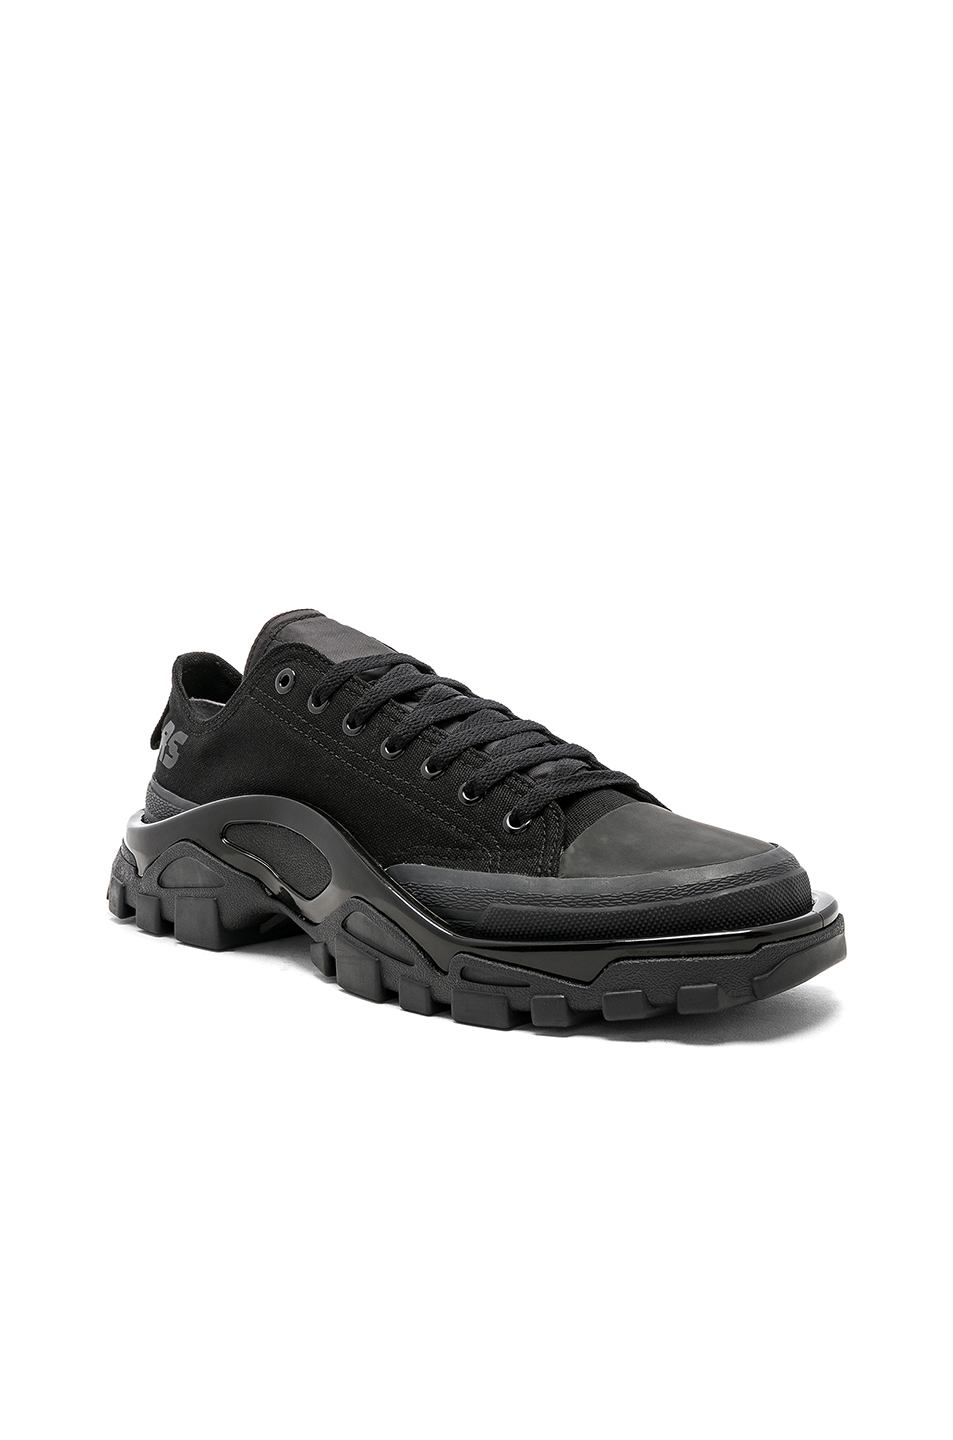 free shipping 0fc72 8590a ... adidas by Raf Simons Detroit Runner ...